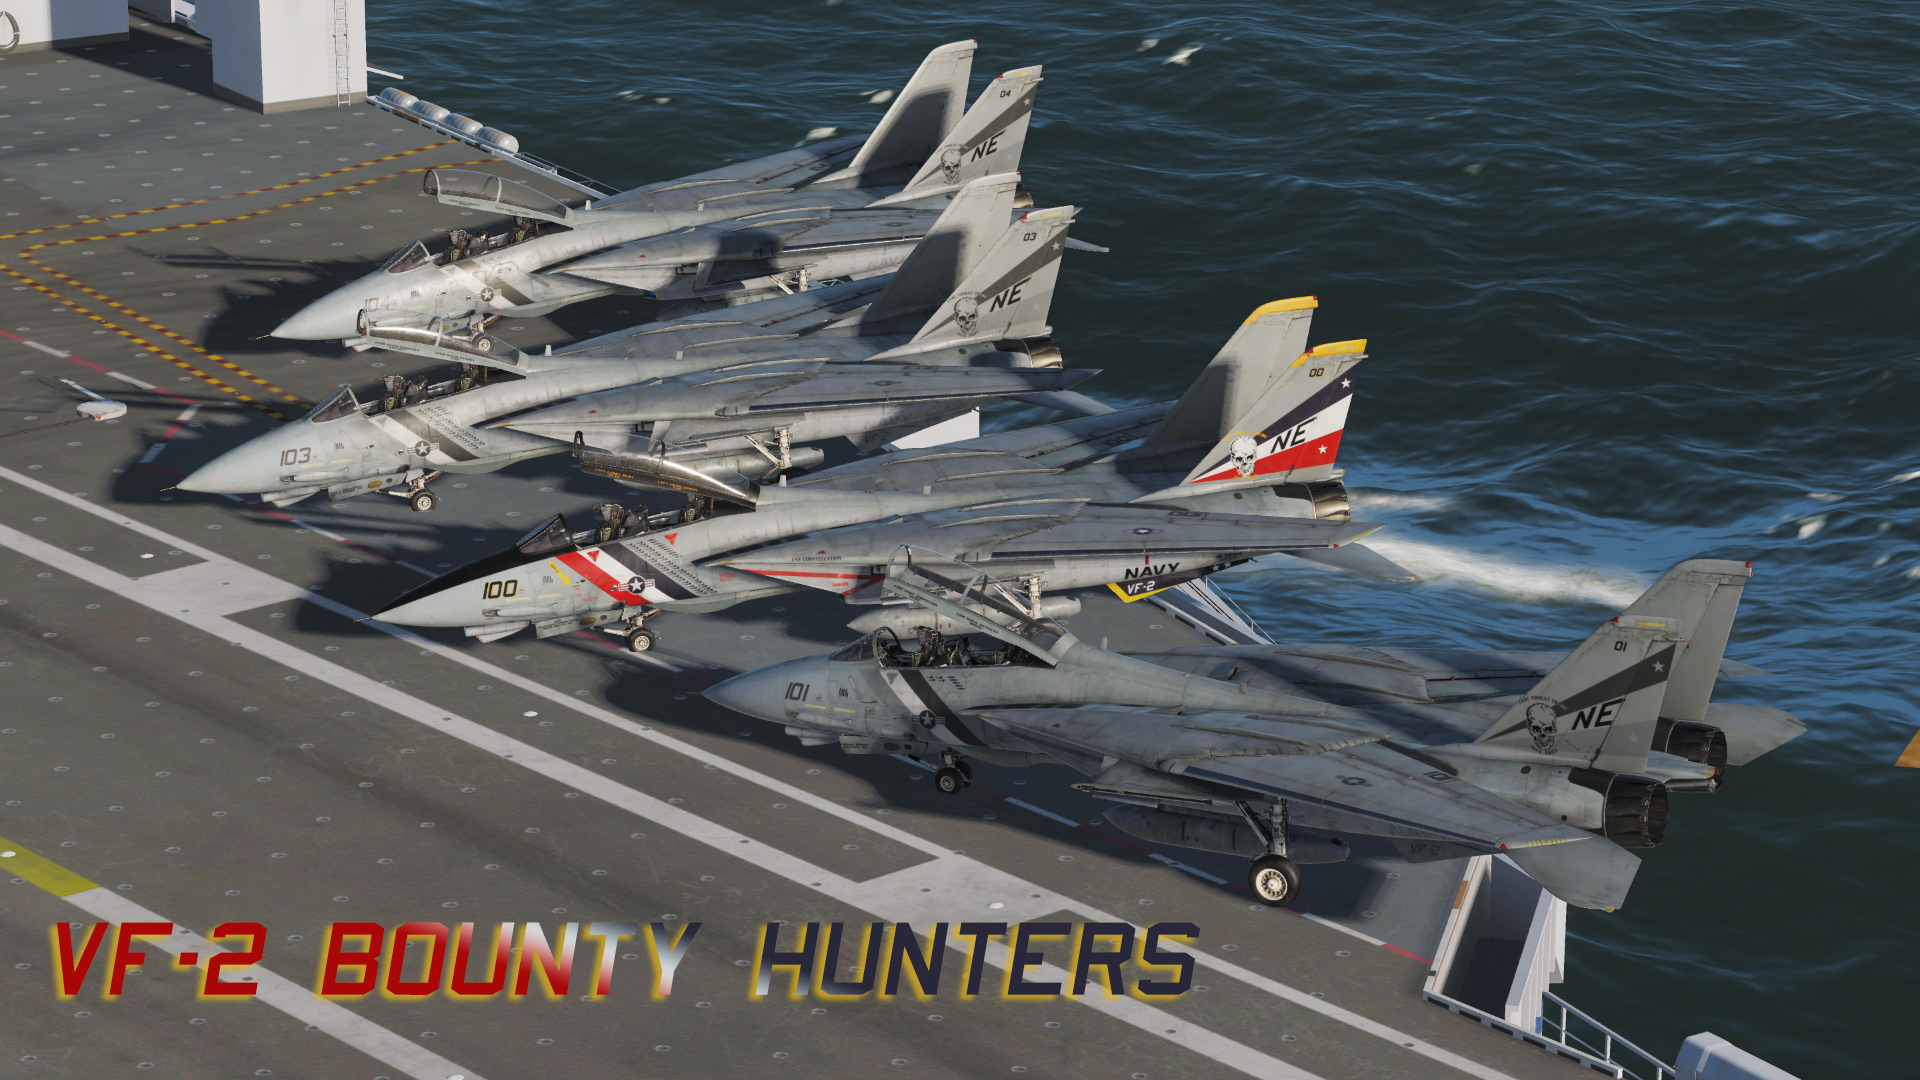 F-14B - VF-2 Bounty Hunters V2.0